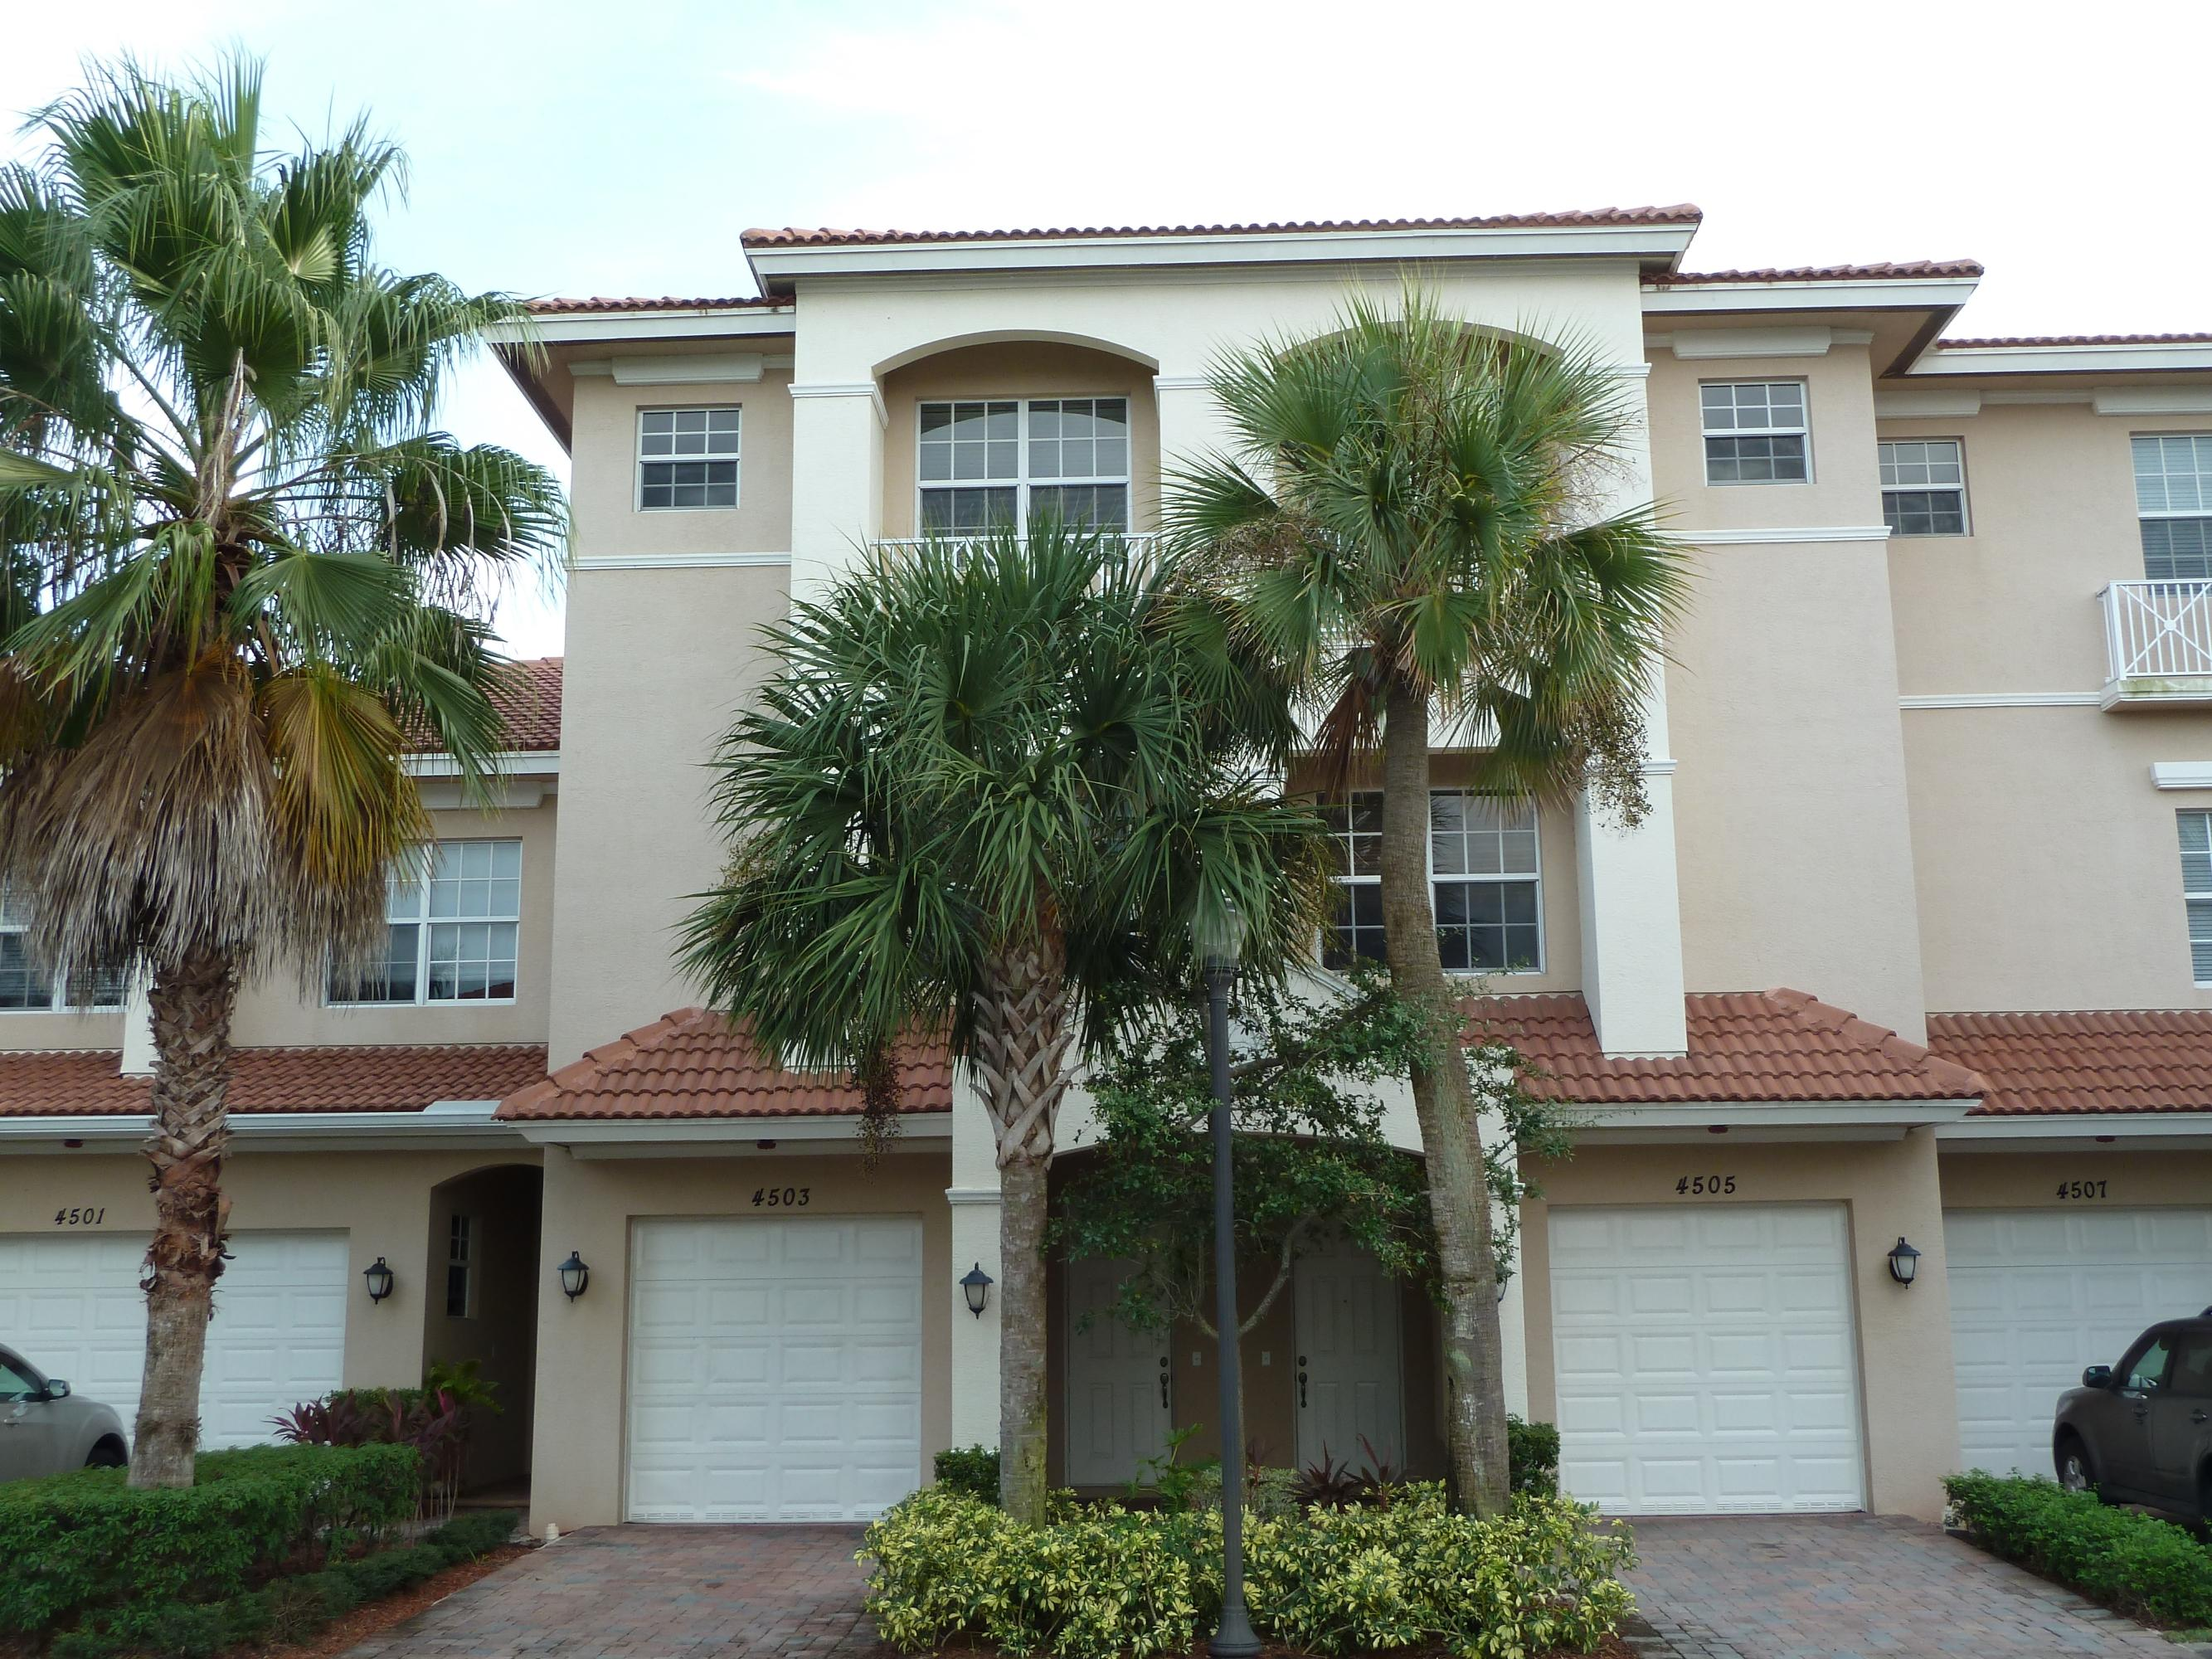 4503 Artesa Way - Palm Beach Gardens, Florida